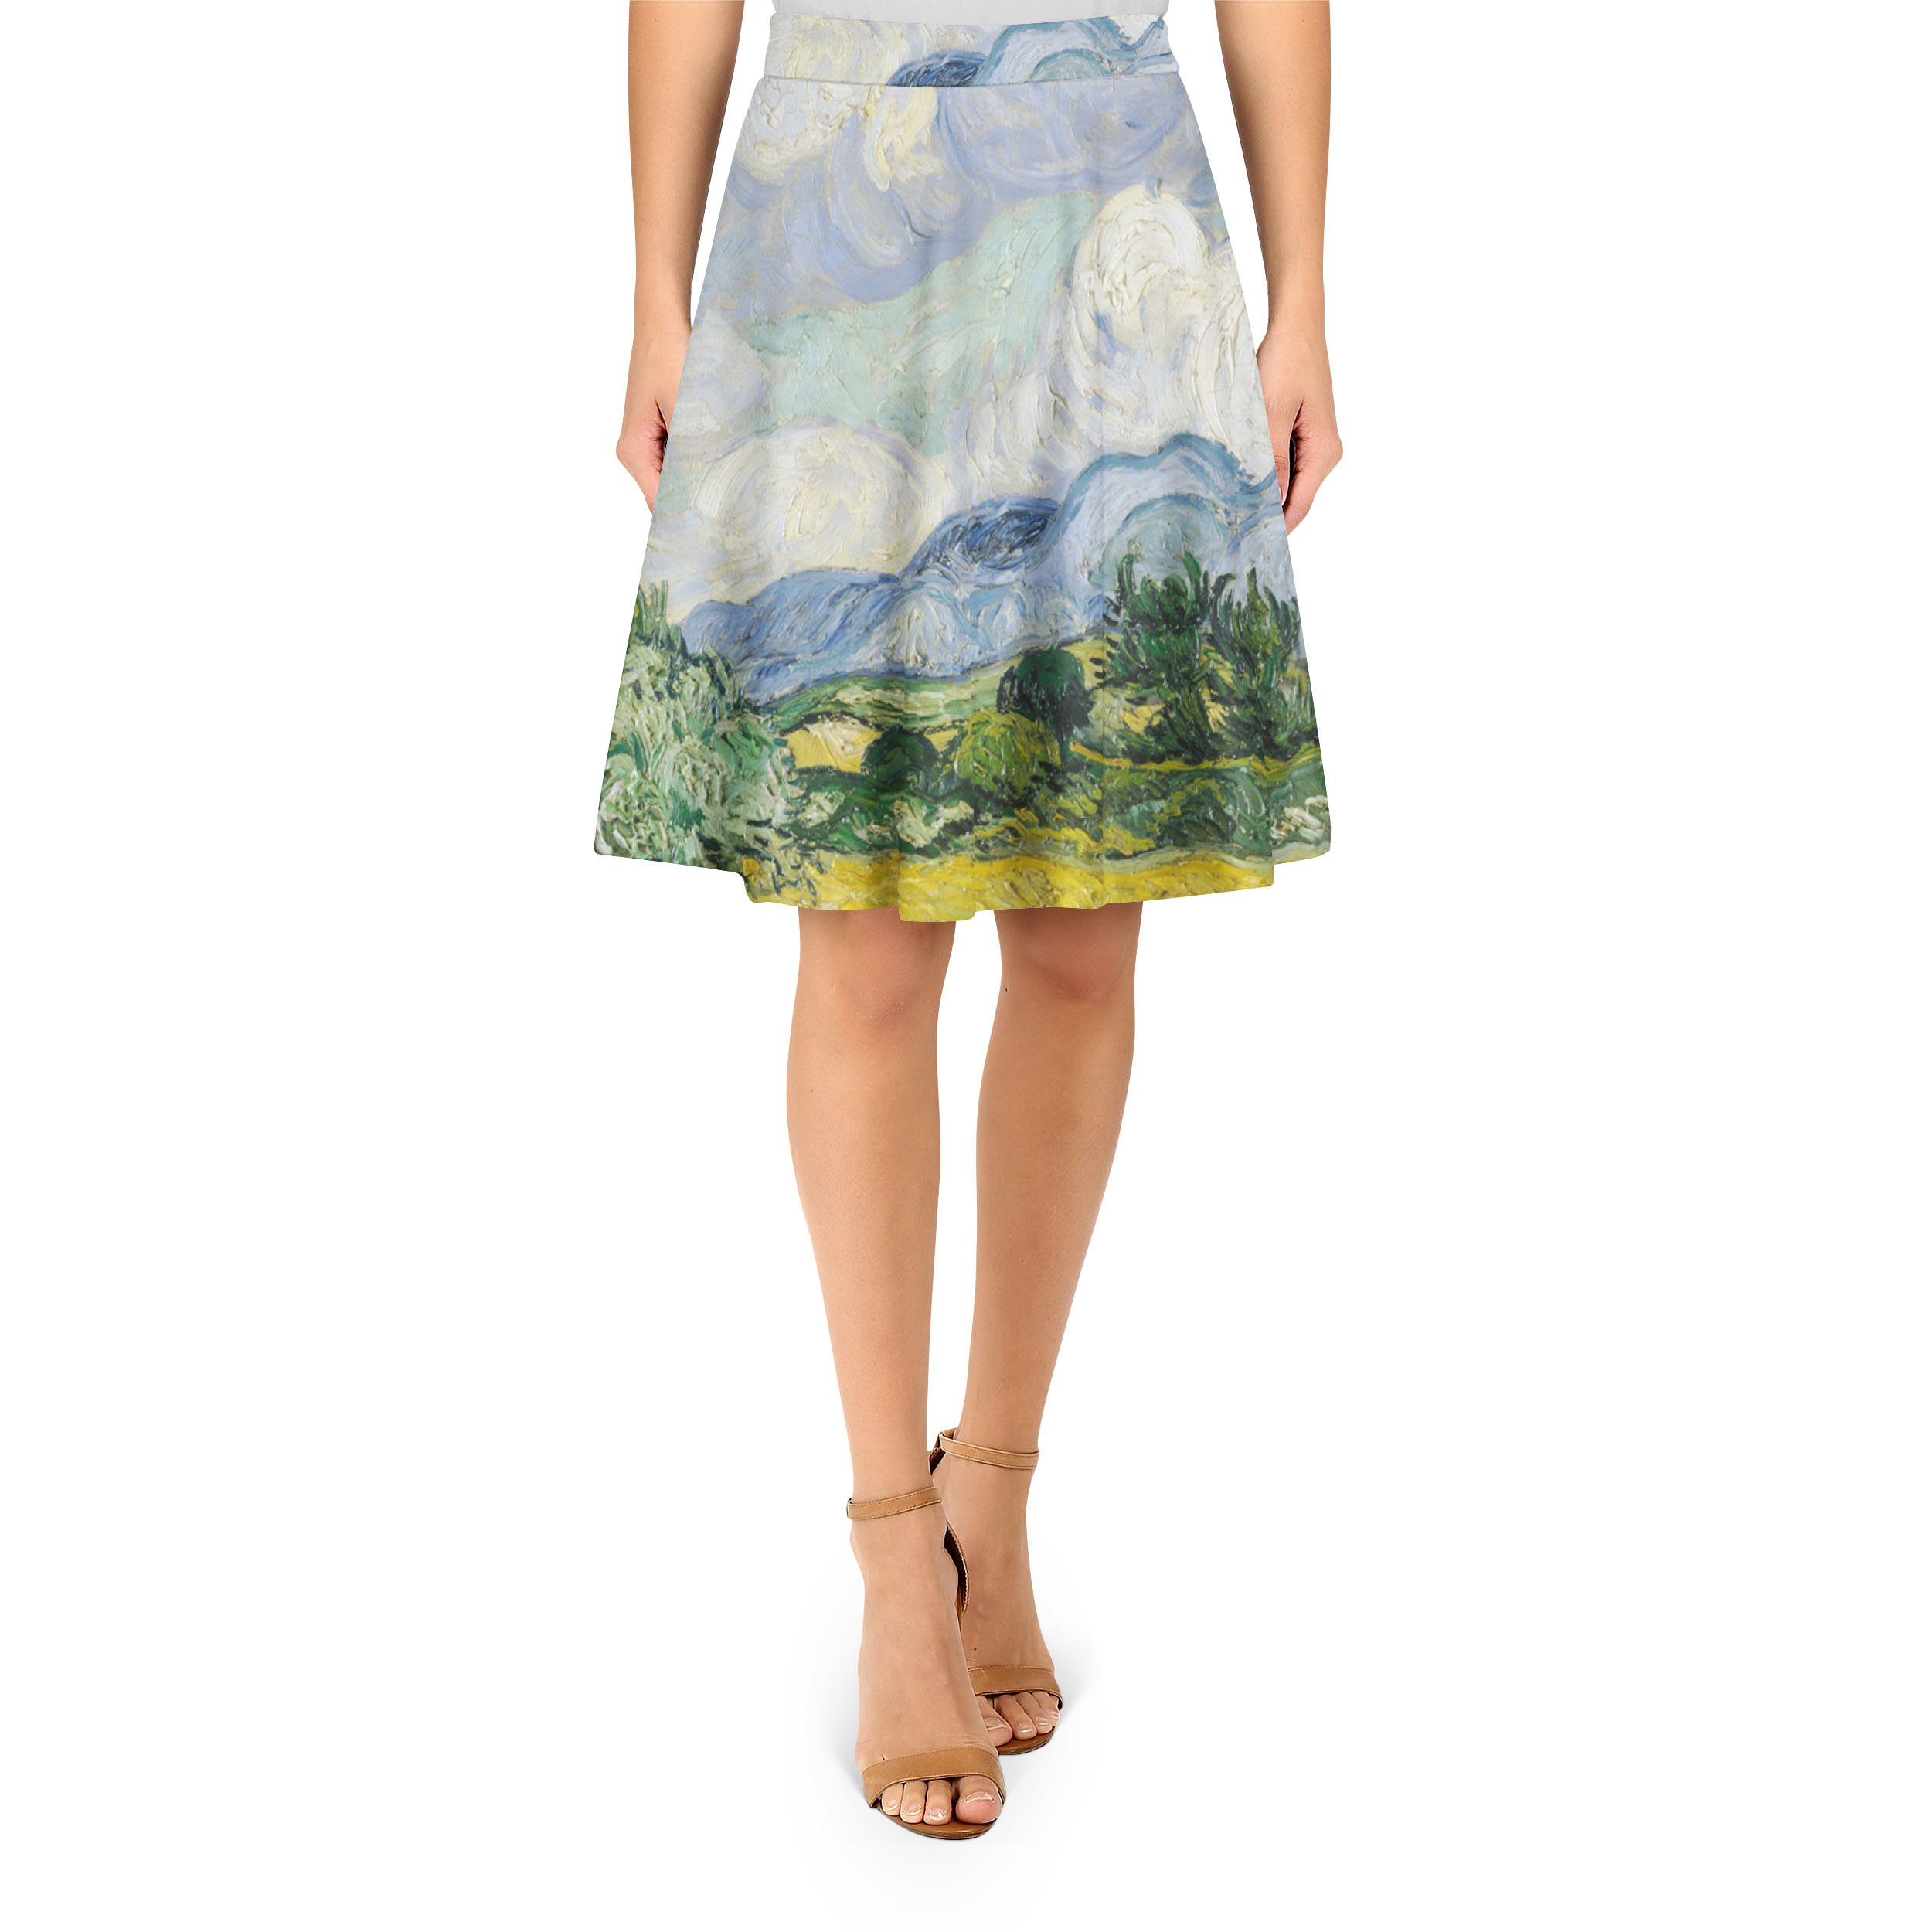 Vincent Van Gogh Fine Art Painting A-Line Skirt - 2XL